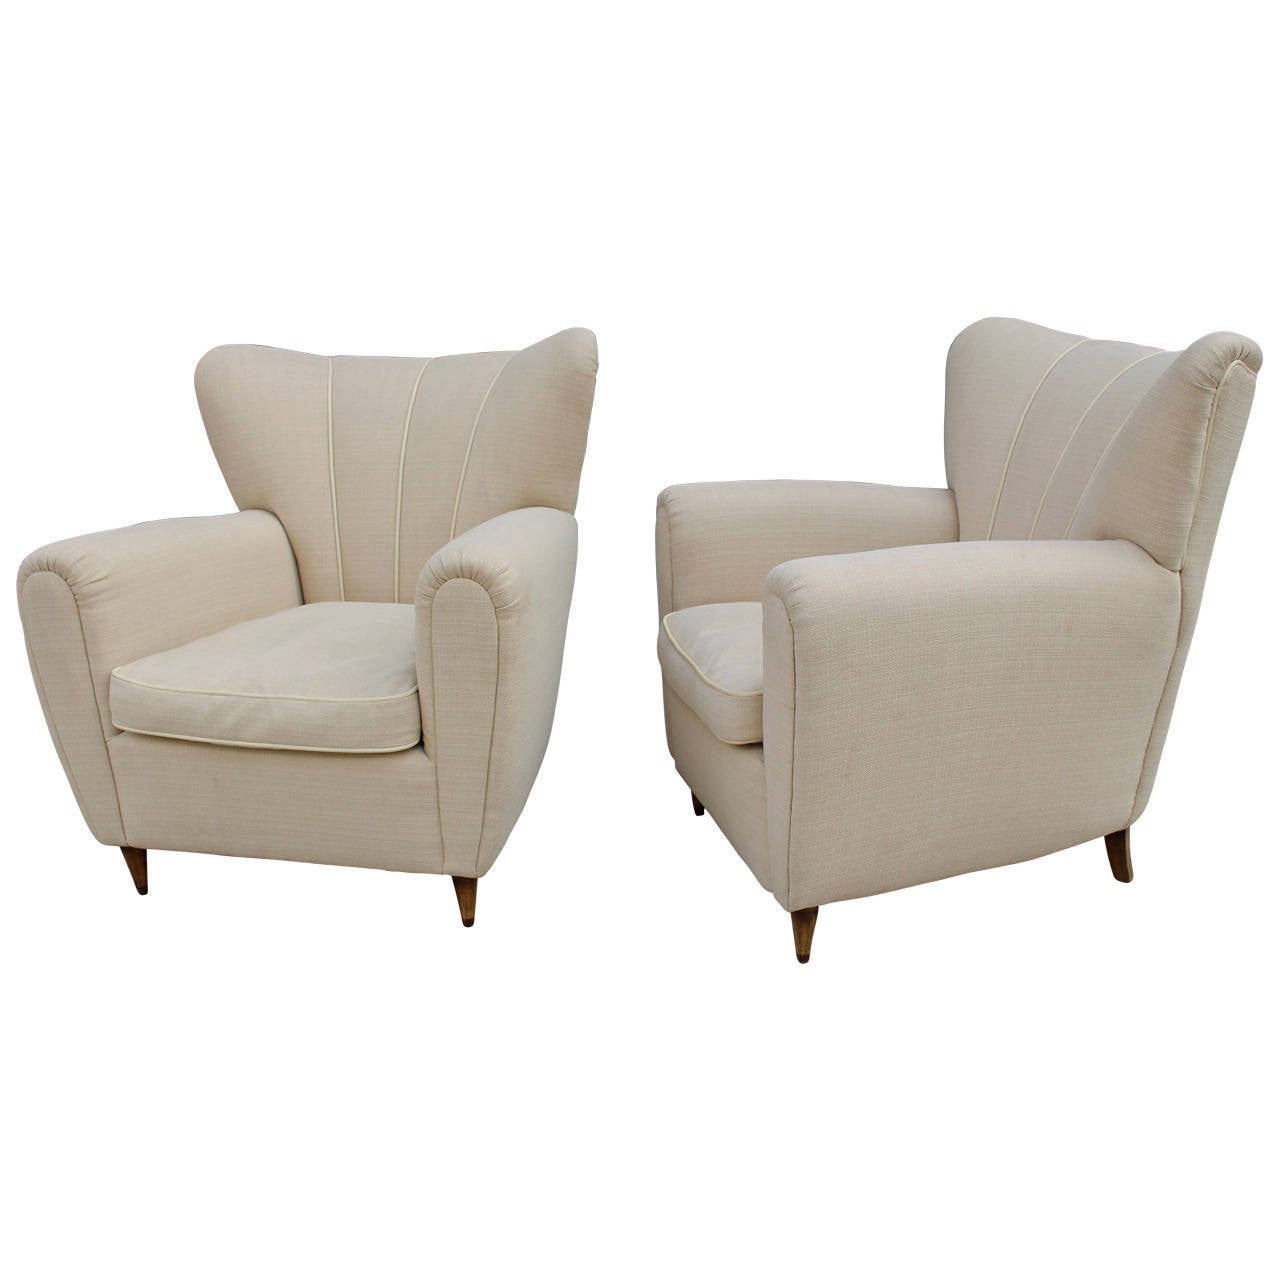 Pair of Italian Club Chairs in Style of Guglielmo Ulrich For Sale